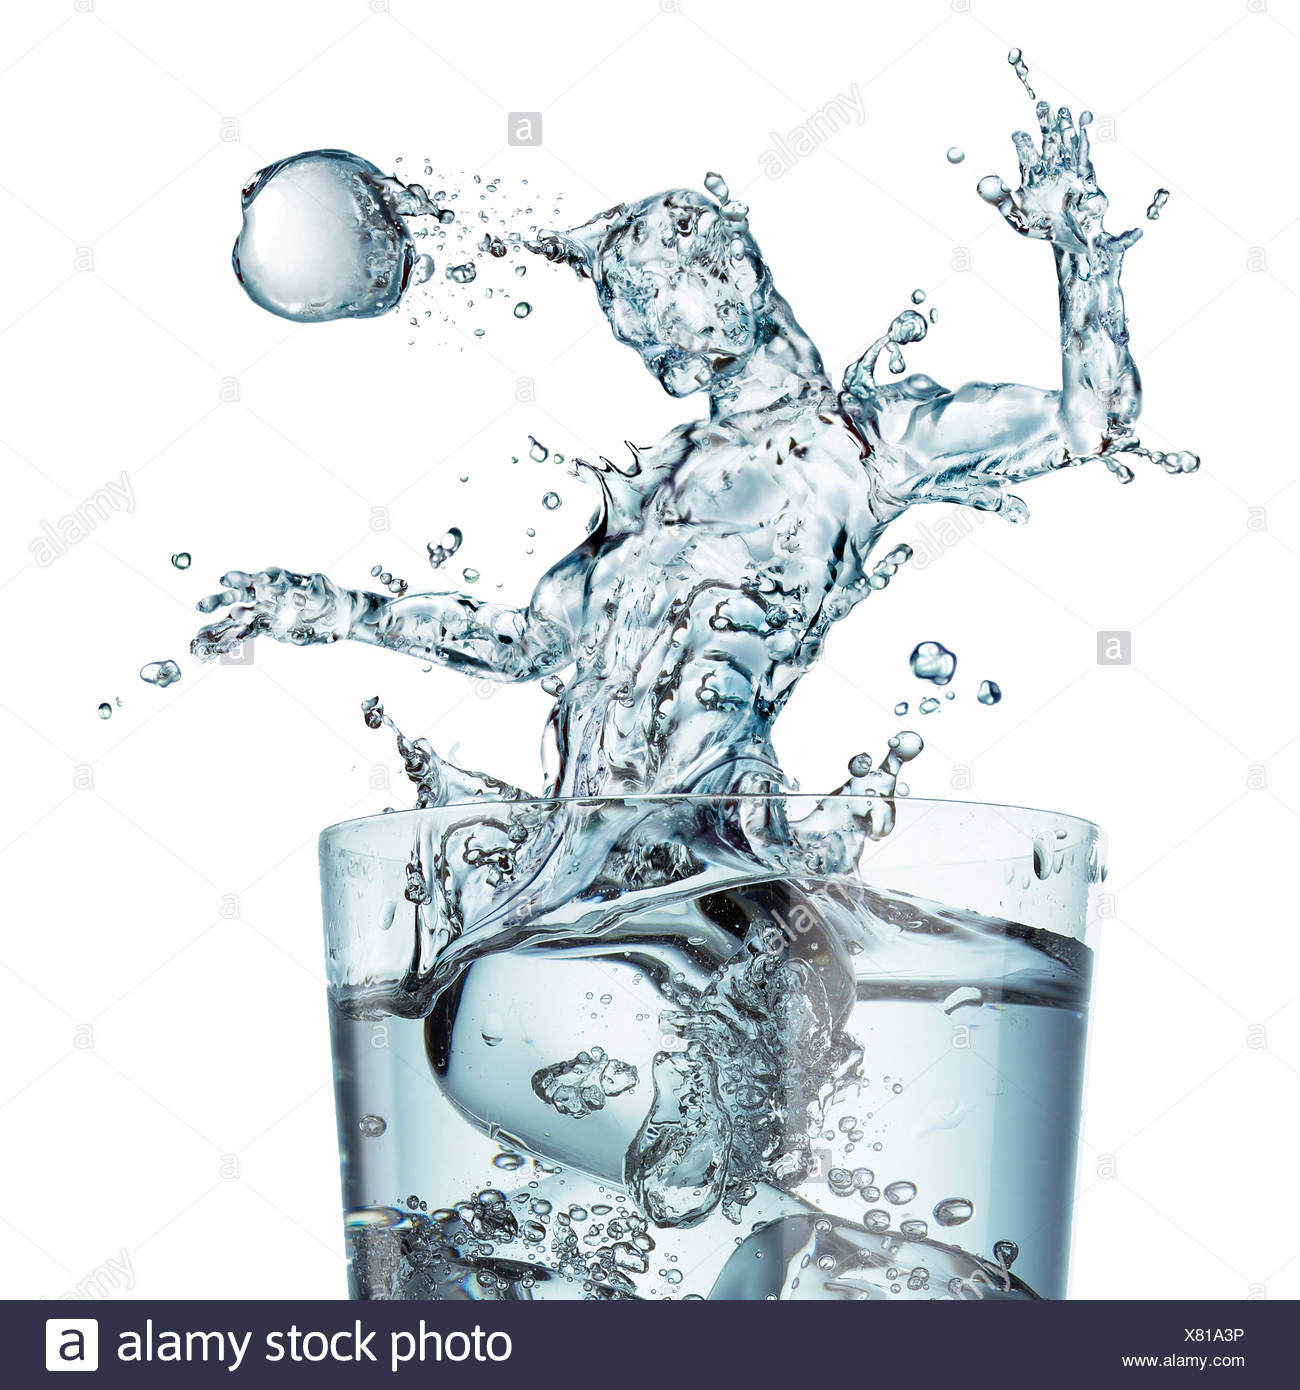 Sports hydration conceptual computer artwork Glass of water with a splash shaped as a football player heading the ball - Stock Image